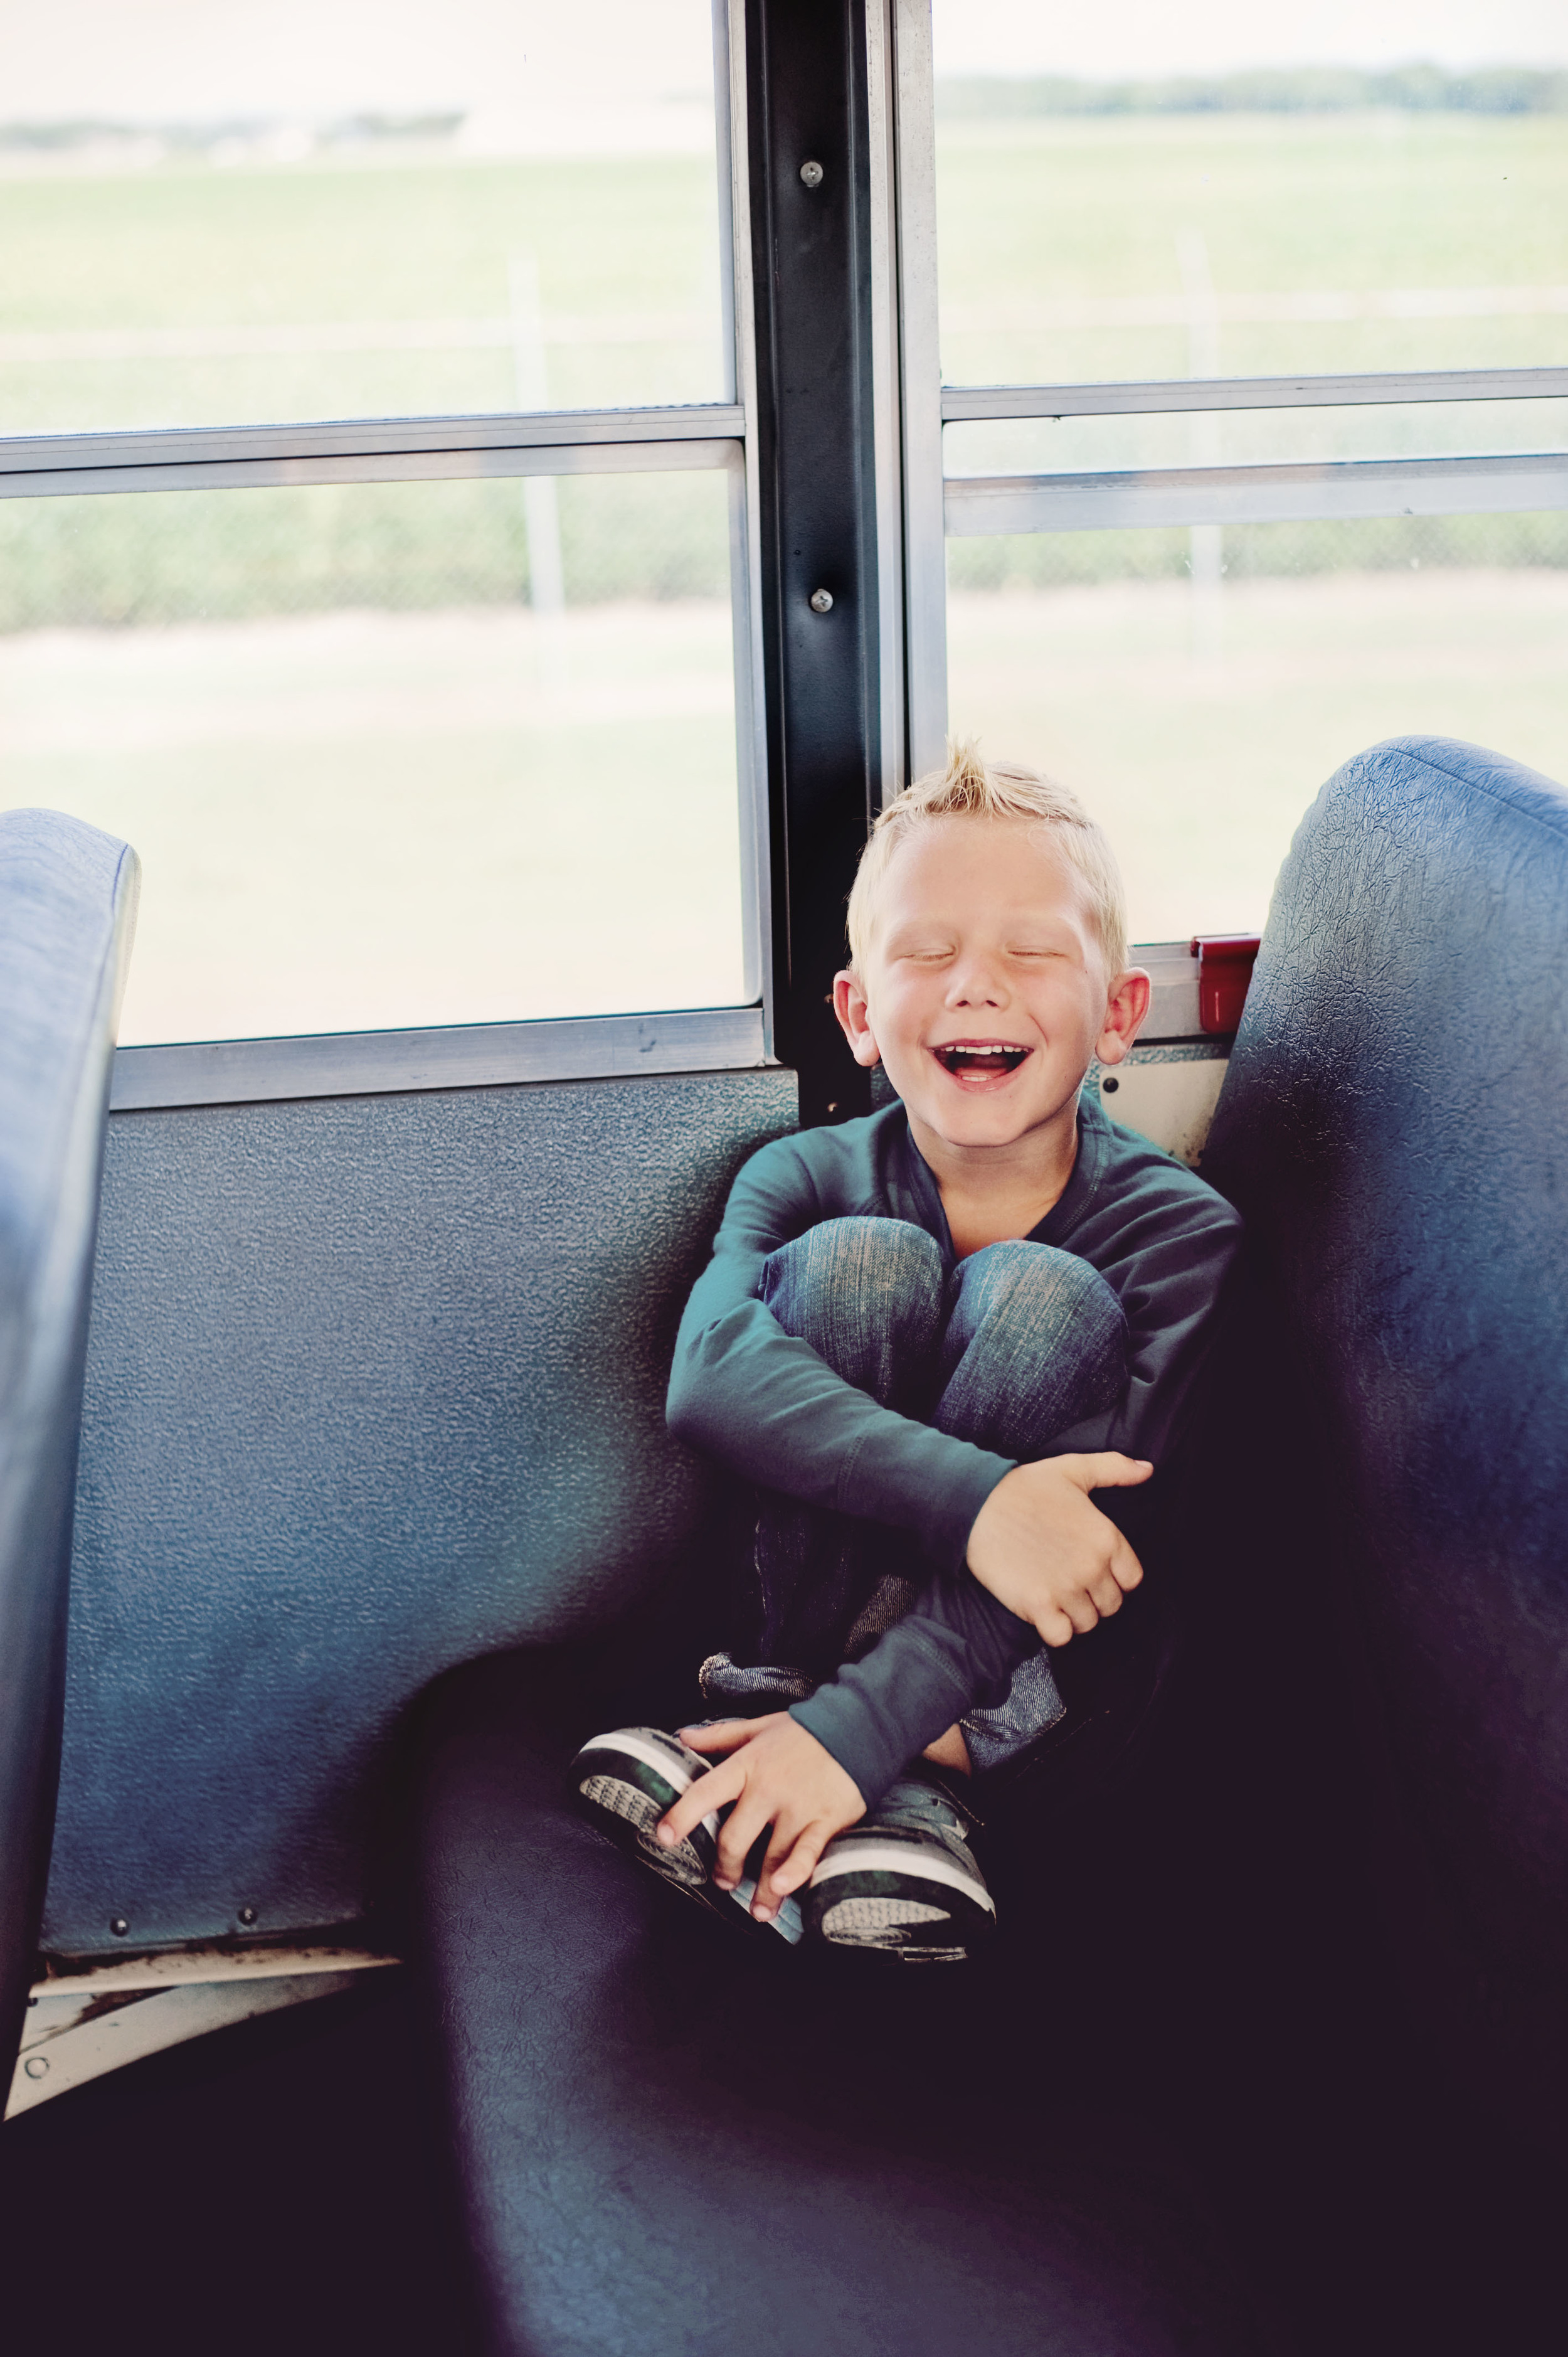 school bus mini photo sessions